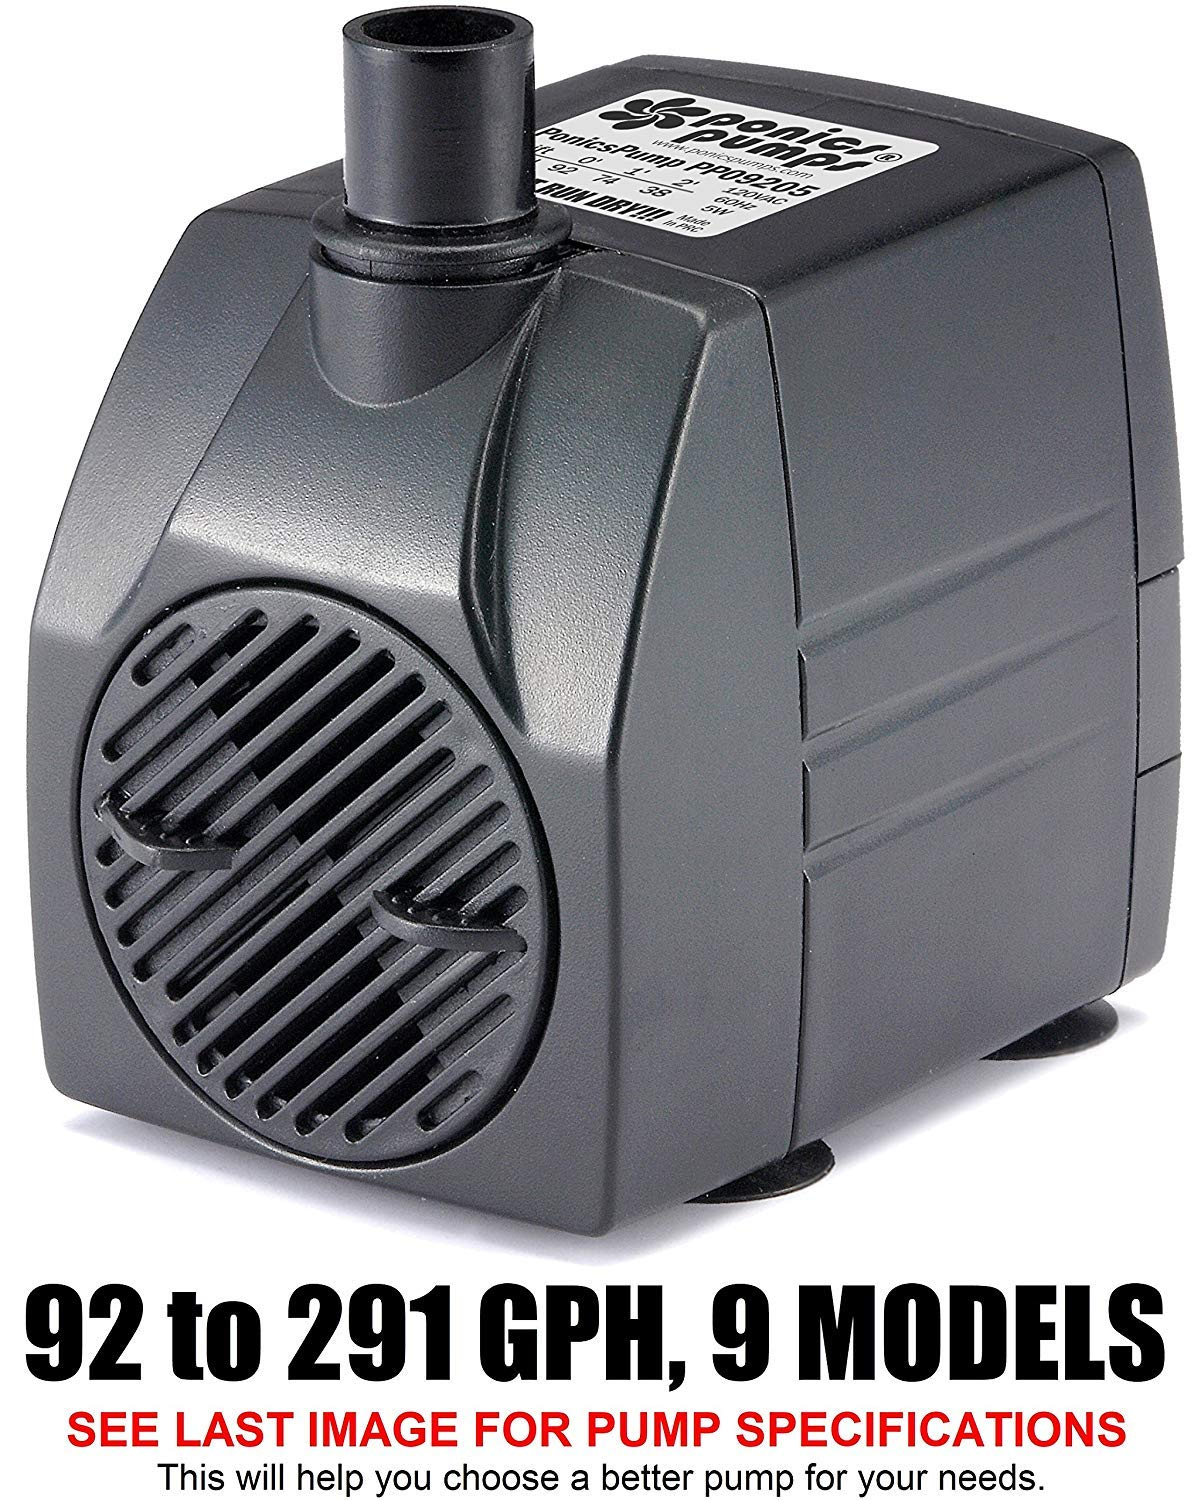 B00NCGX330 PonicsPump PP09205: 92 GPH Submersible Pump with 5' Cord - 5W… for Fountains, Statuary, Aquariums & more. Comes with 1 year limited warranty. 81xdqKiW2zL